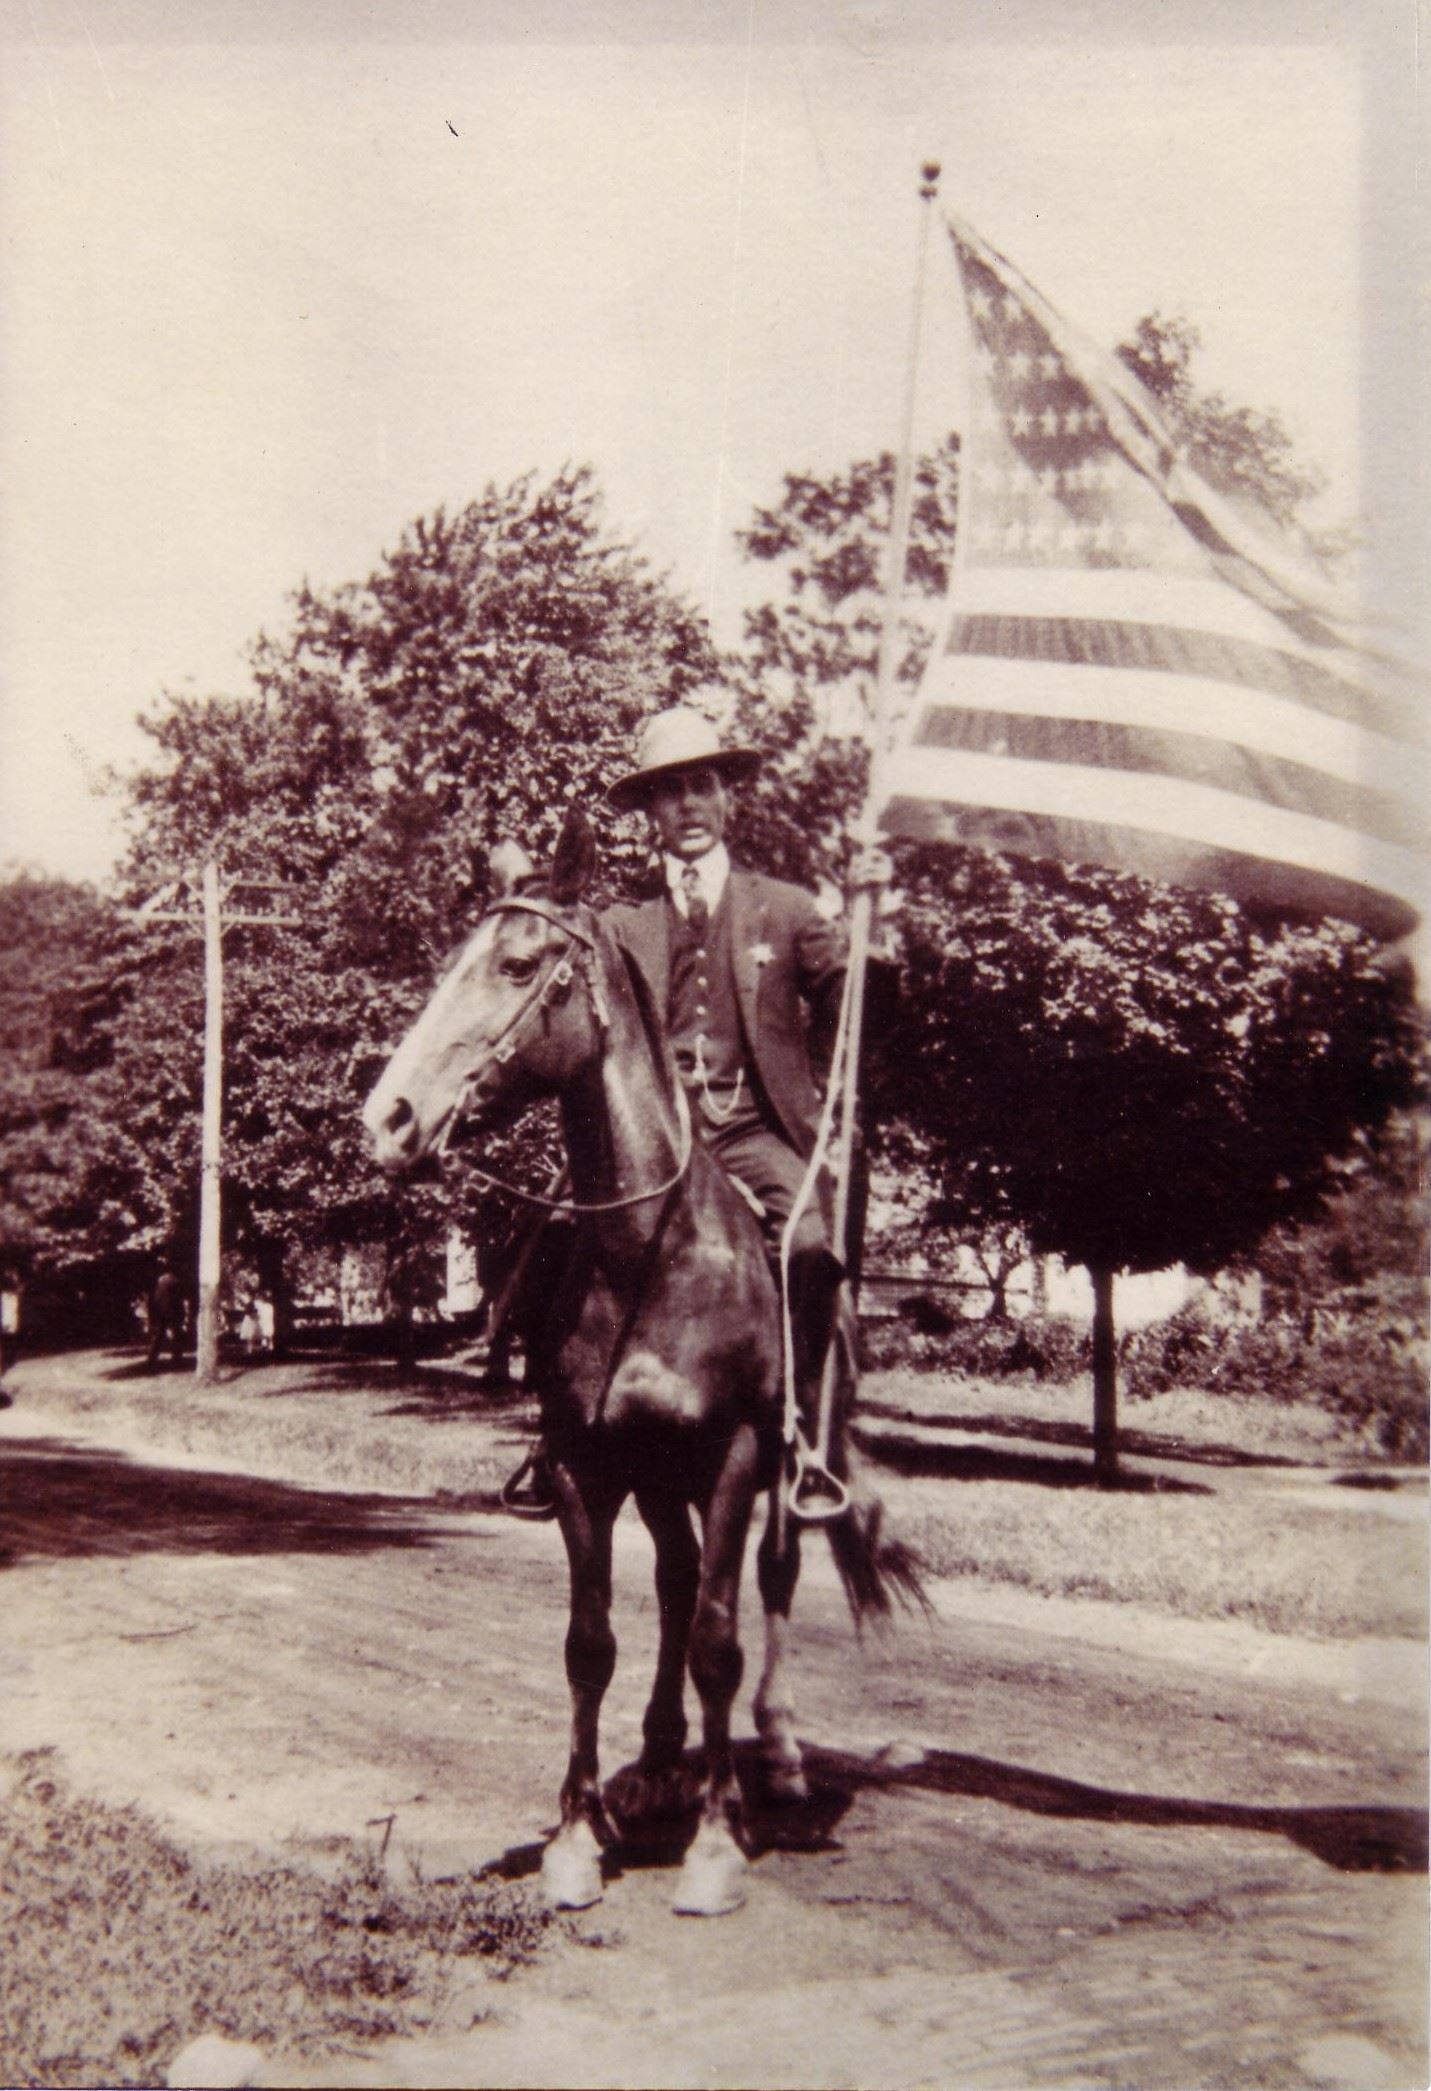 Police Chief on a Horse in 1916